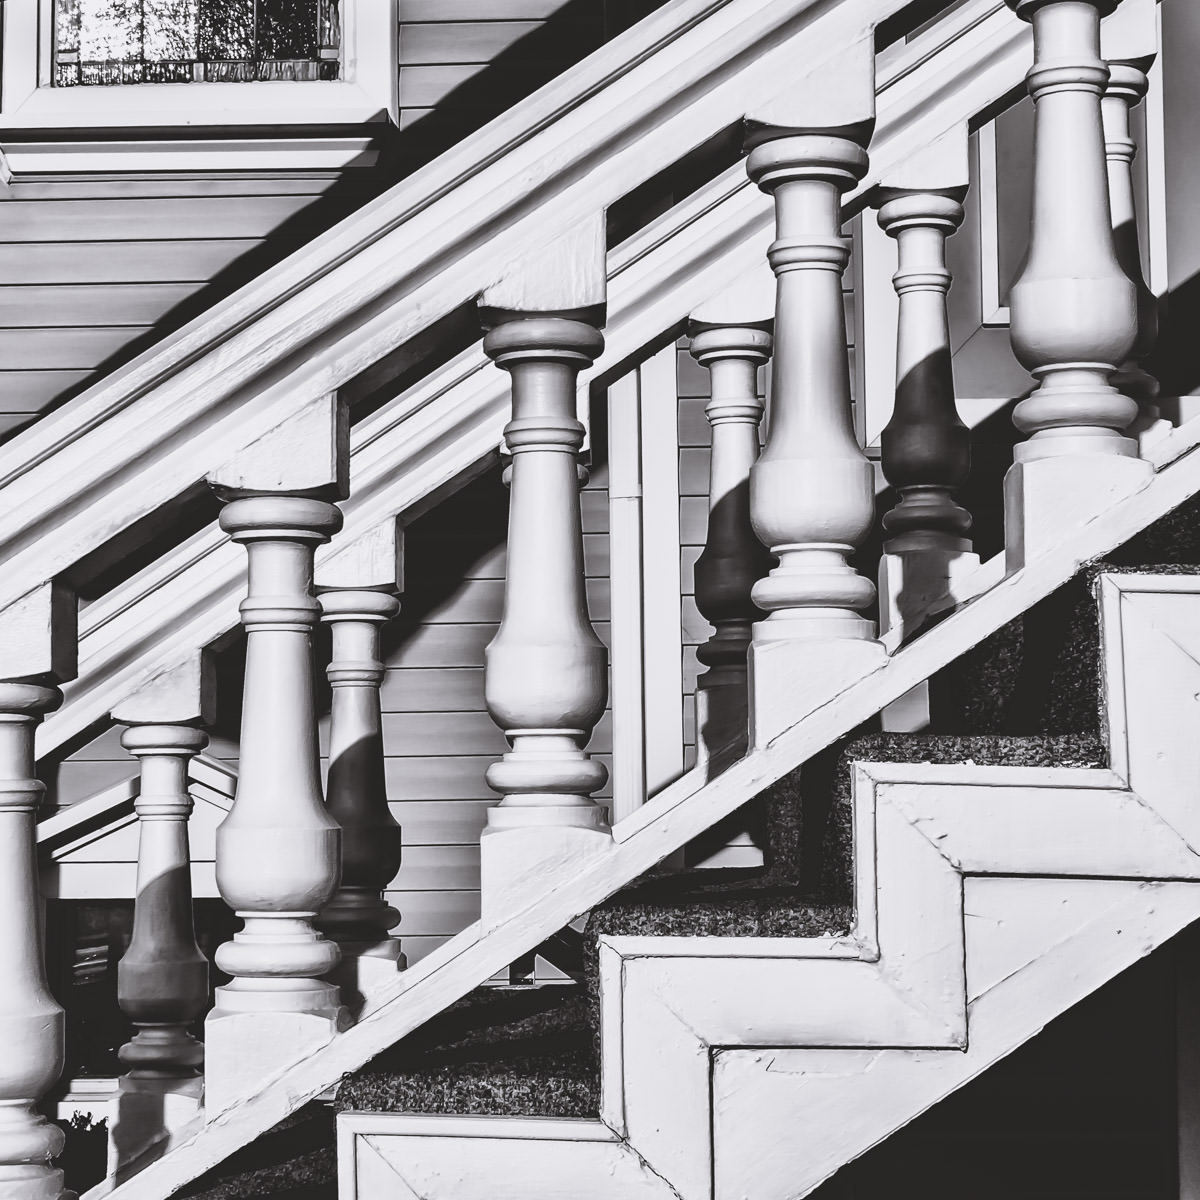 A stairway's ornate banister in Old Downtown Addison, Texas.